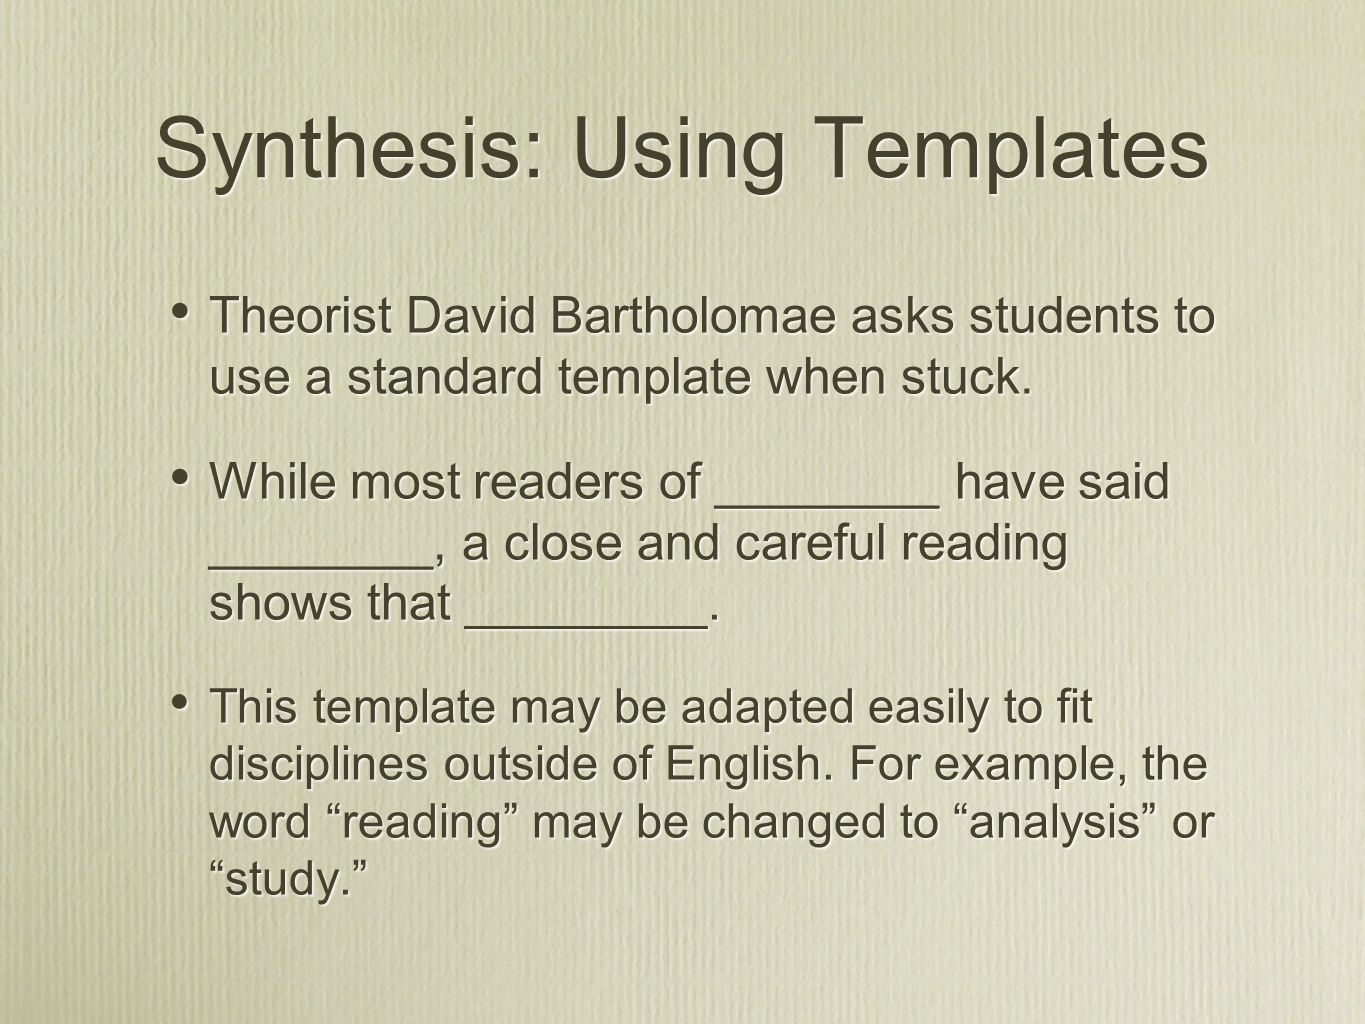 Synthesis: Using Templates Theorist David Bartholomae asks students to use a standard template when stuck.